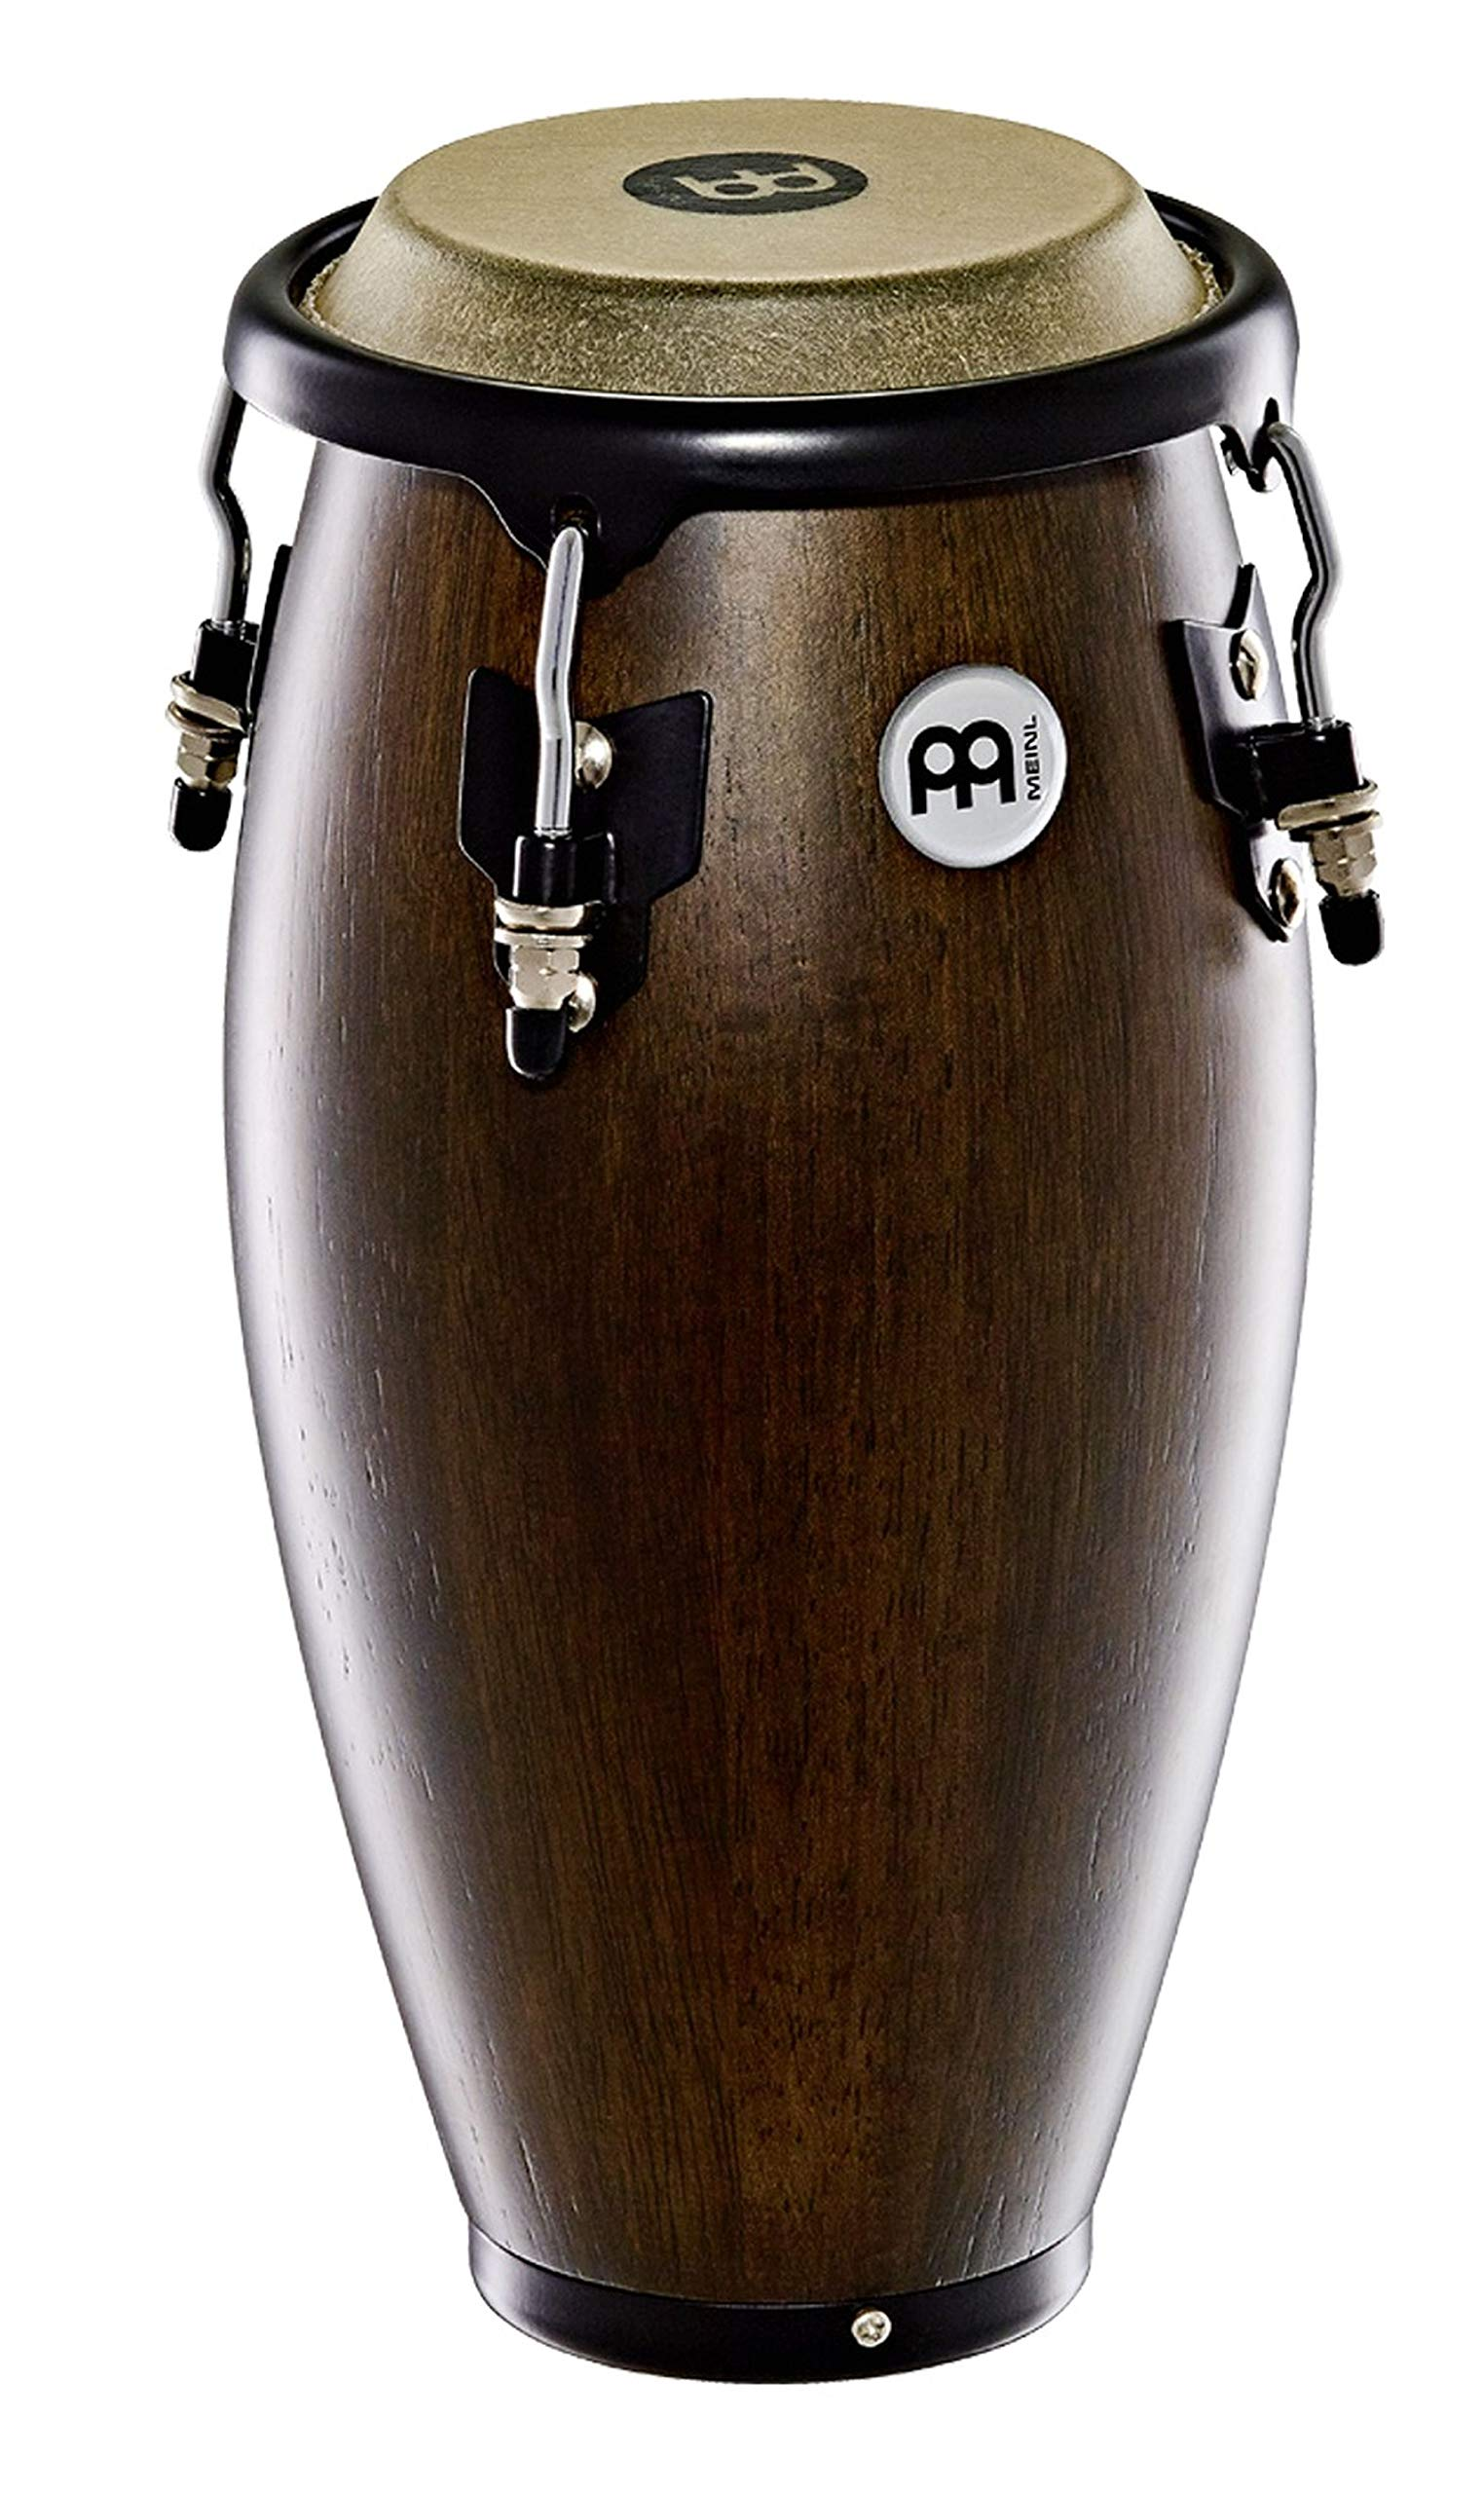 Meinl Percussion 4 1/2'' Mini Conga with Hardwood Shell and Tunable Buffalo Skin Head - NOT MADE IN CHINA - Vintage Wine Barrel, 2-YEAR WARRANTY, MC100VWB)